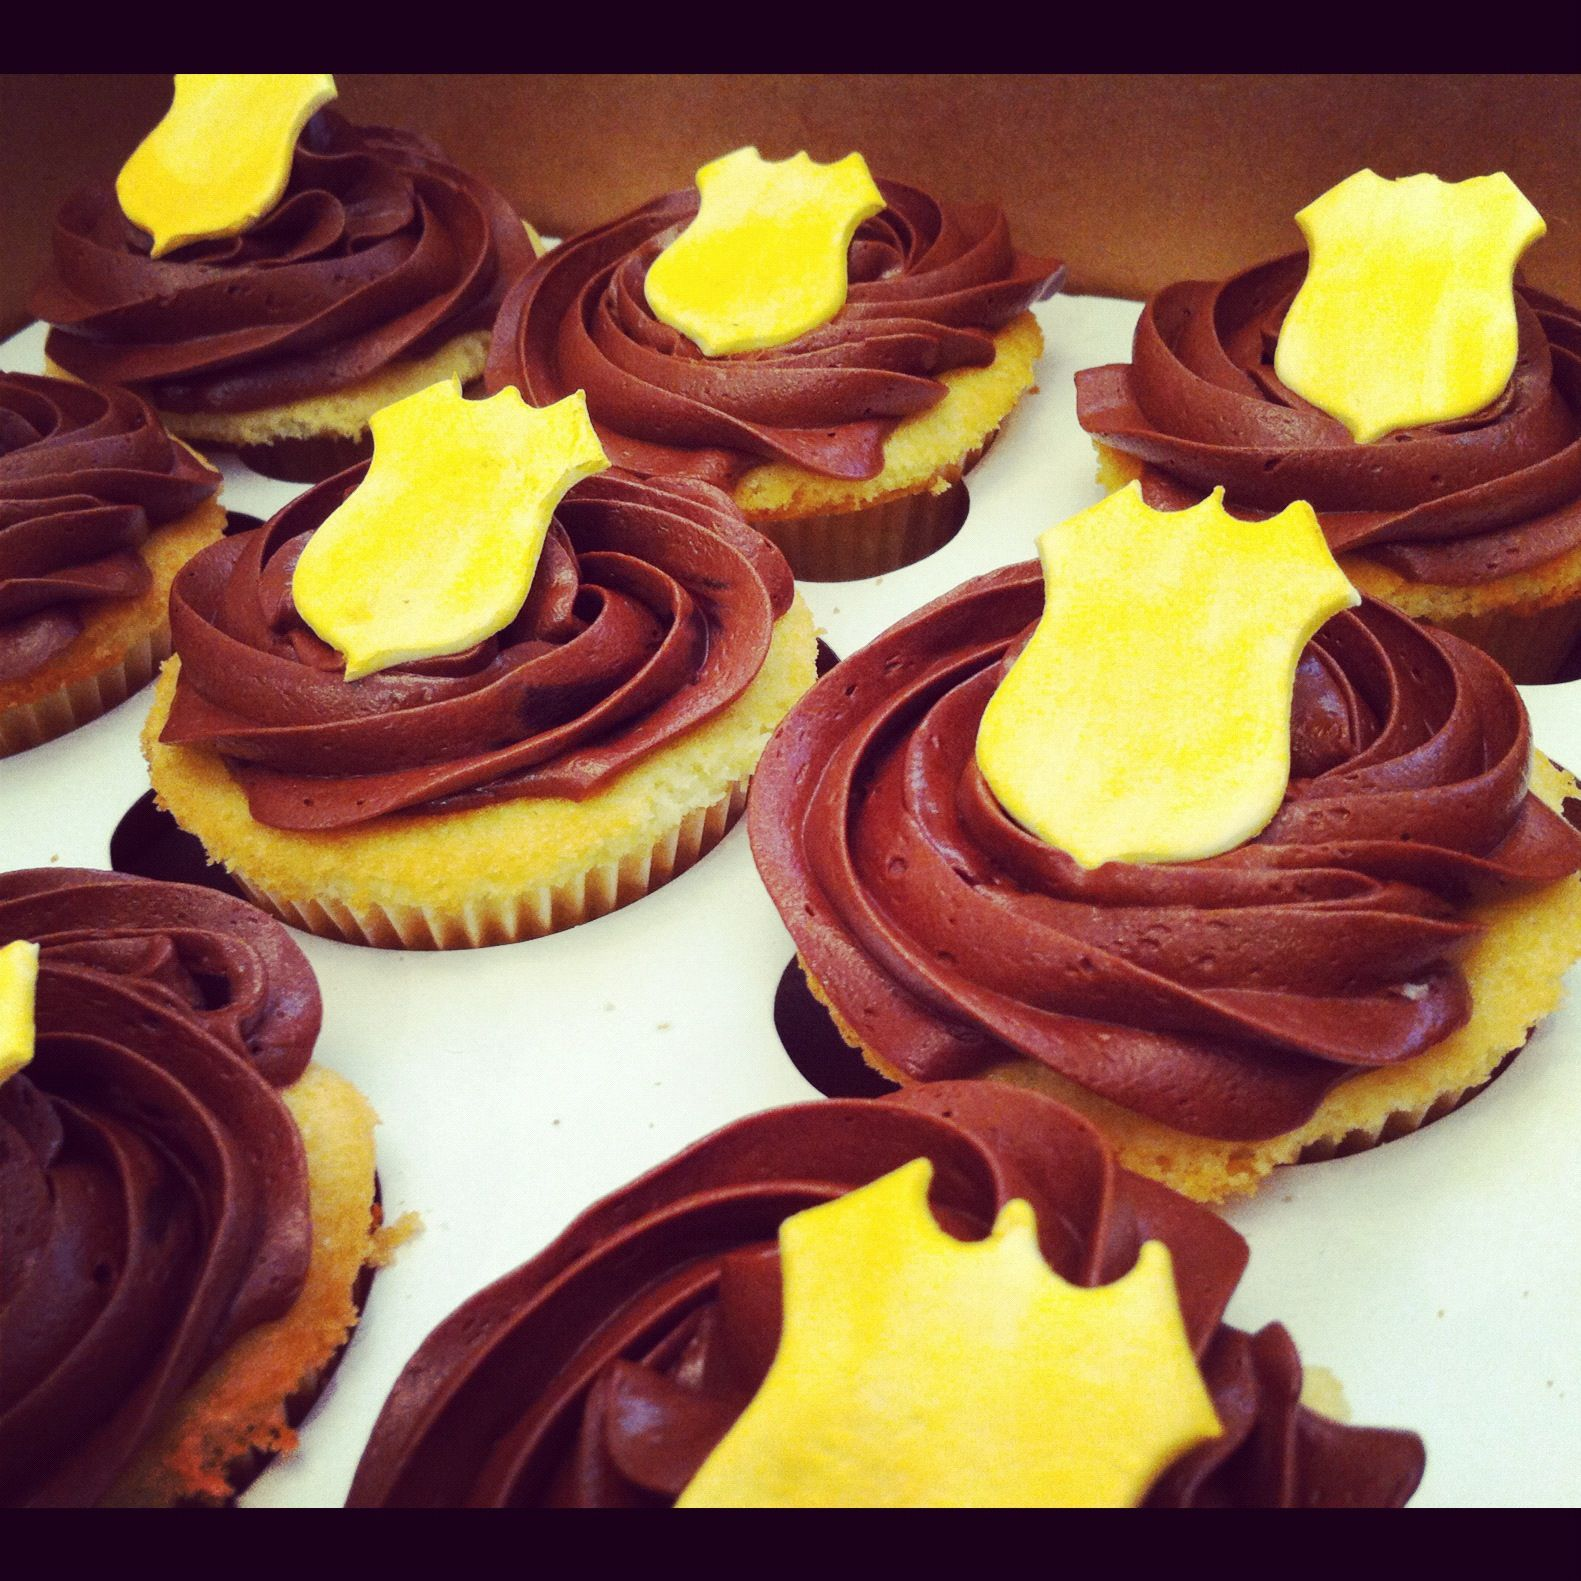 Public Servant Cupcakes - This could work for police, fire, EMS, etc.